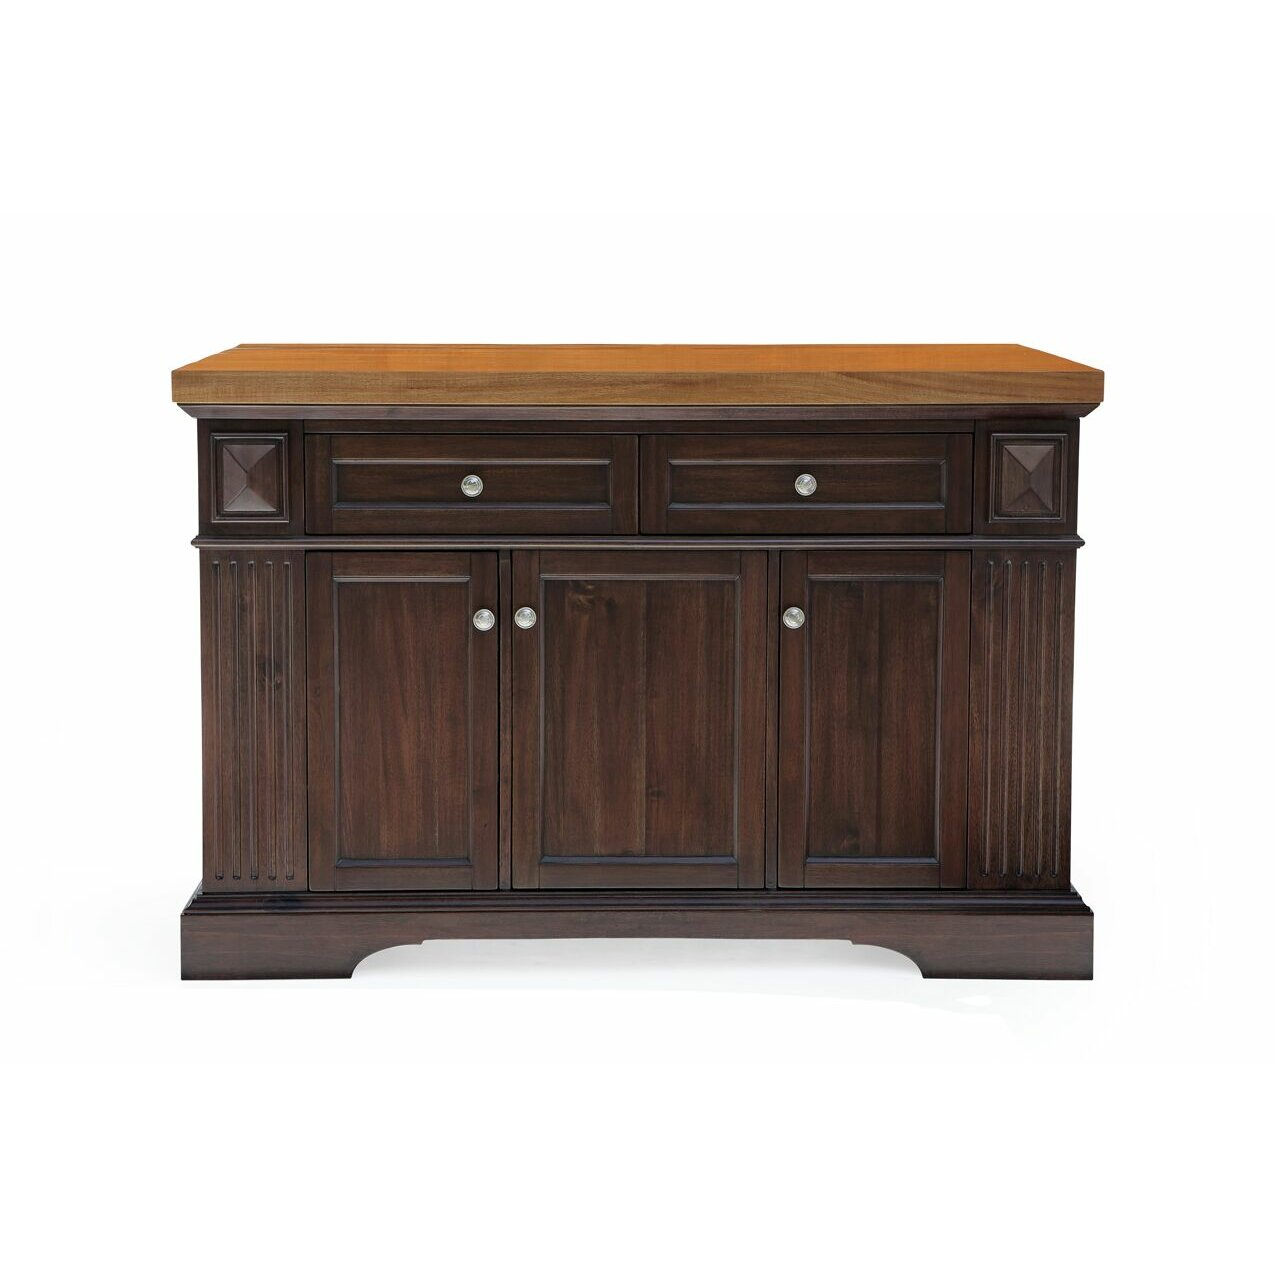 Kitchen Island Chair: 222 Fifth Furniture Greenwich Kitchen Island With Wood Top